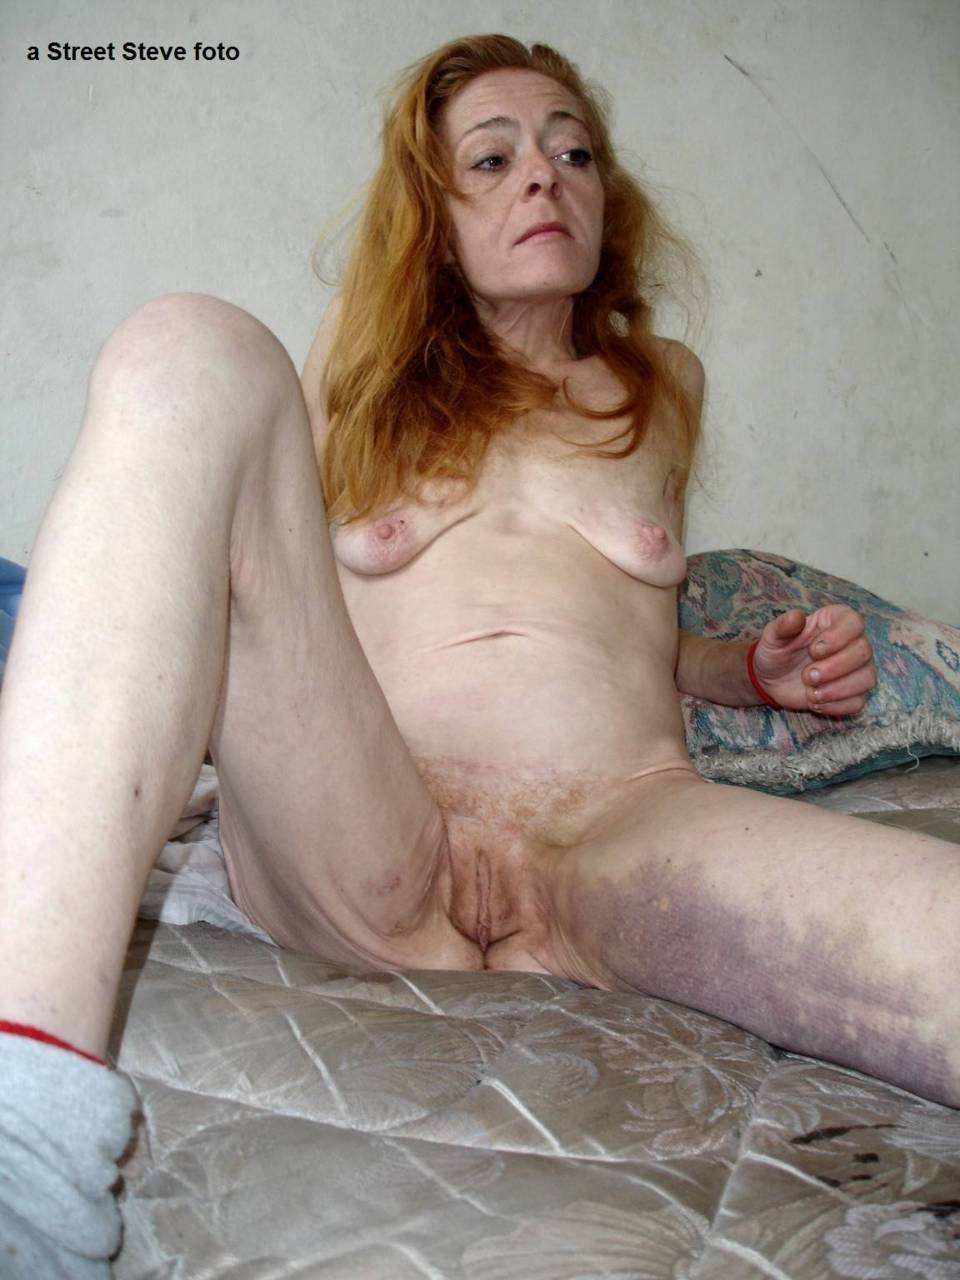 I want to cum on my wifes face